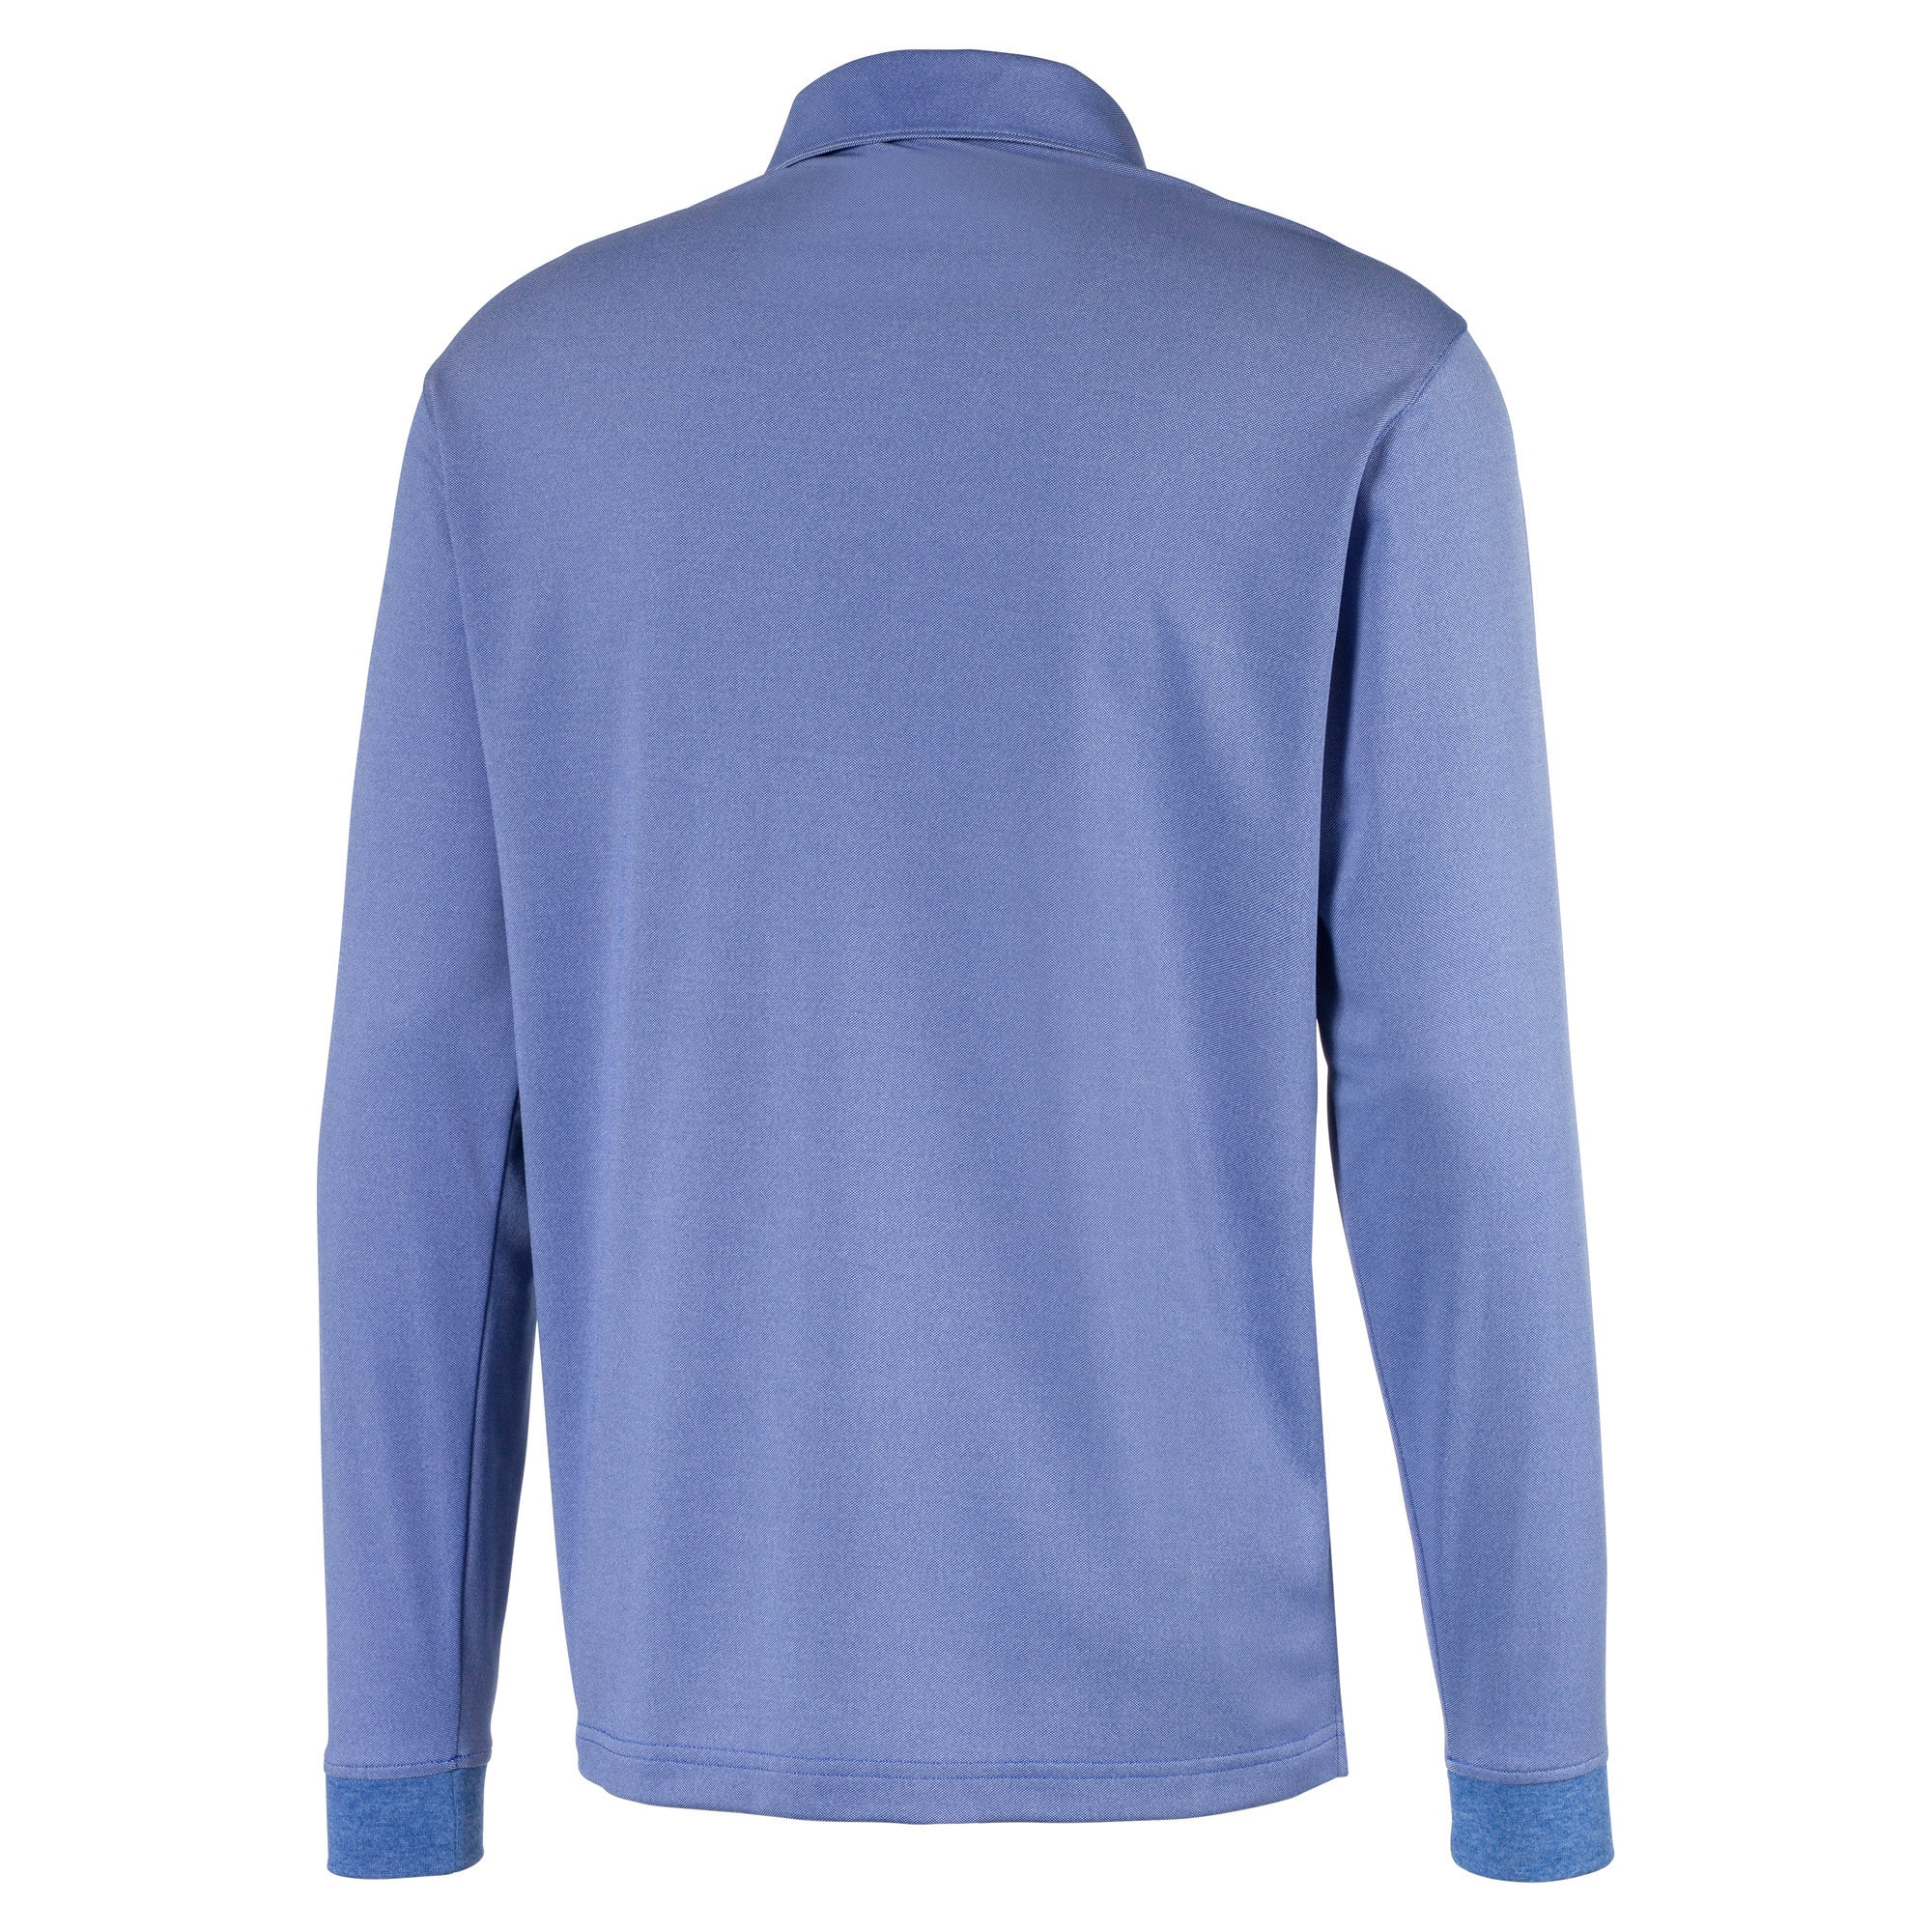 Long Sleeve Men's Golf Polo, Dazzling Blue Heather, large